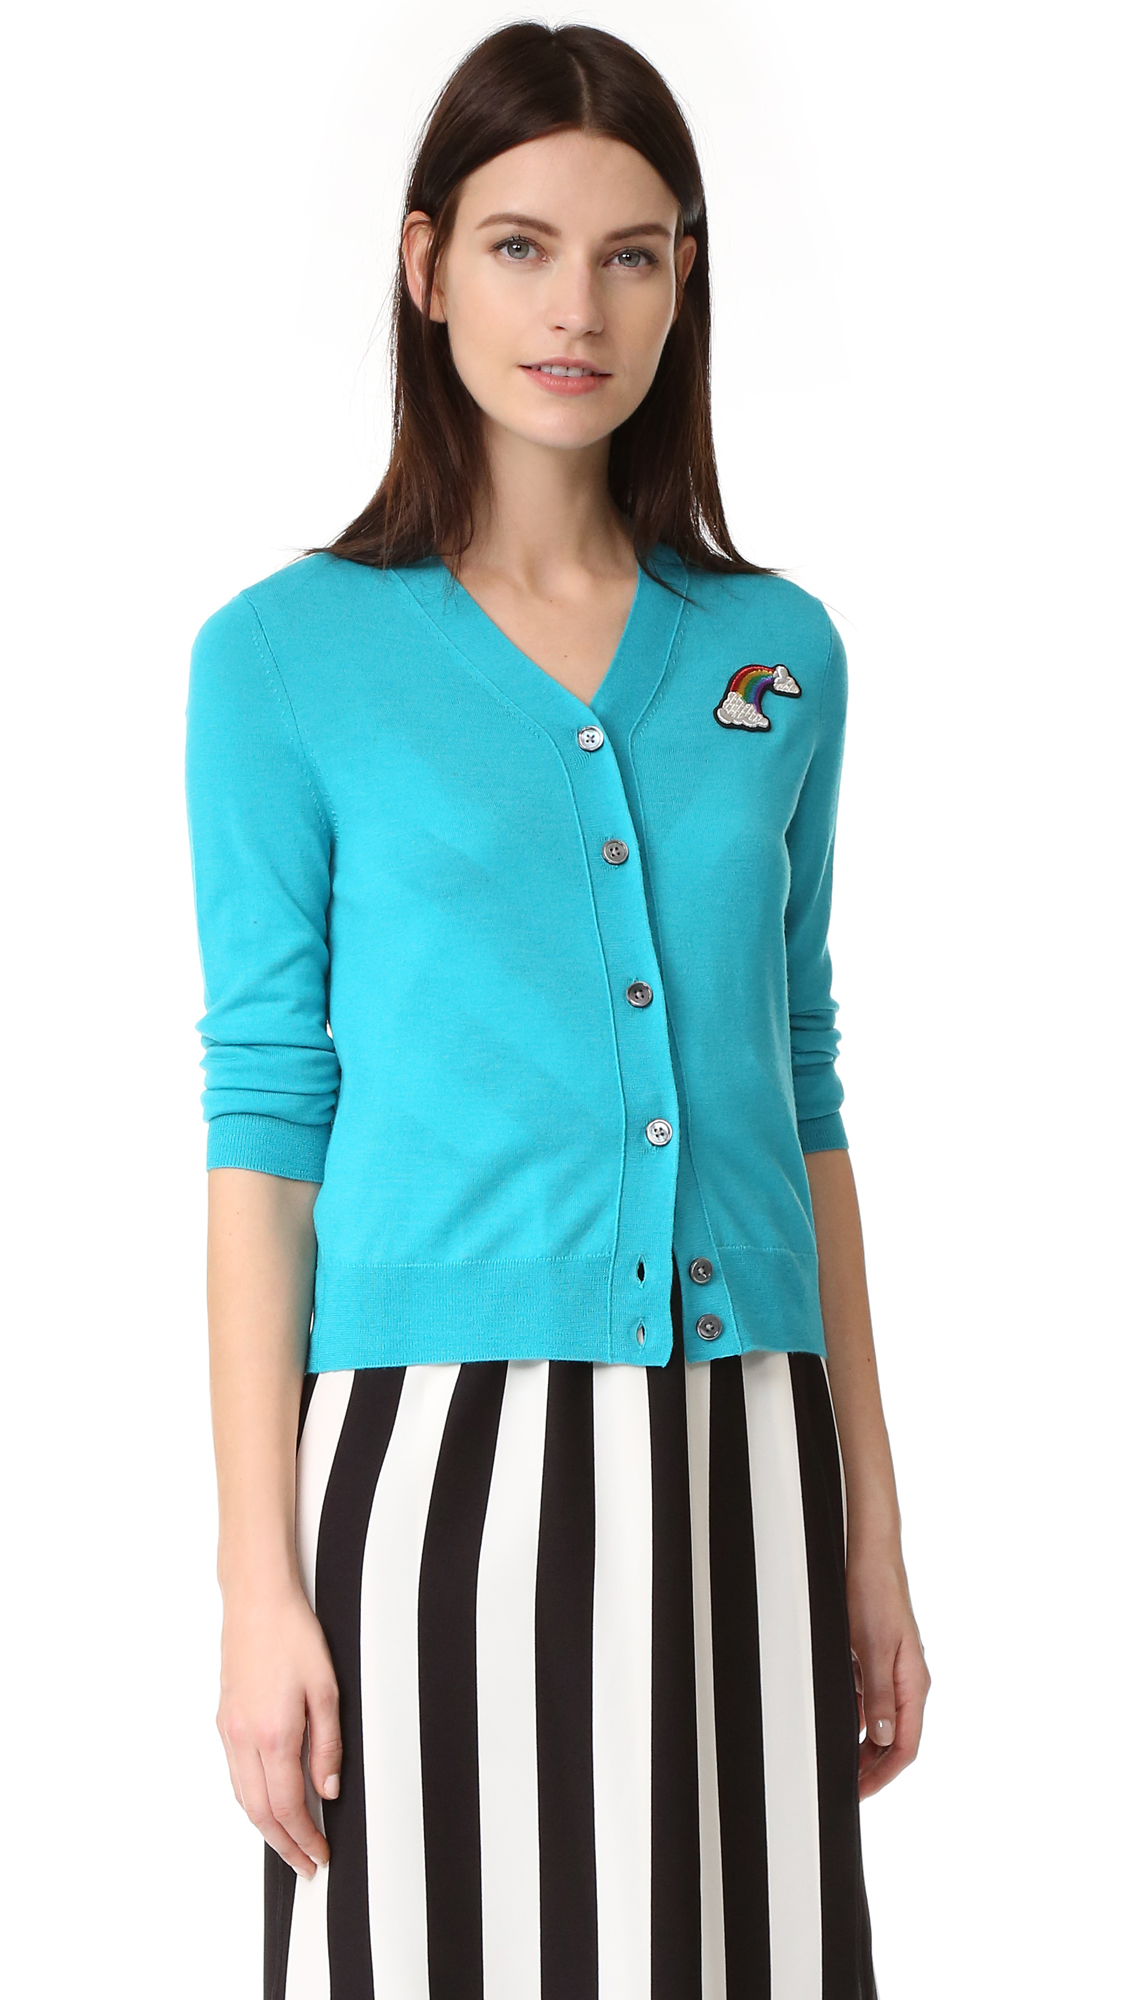 marc jacobs female marc jacobs long sleeve cardigan turquoise